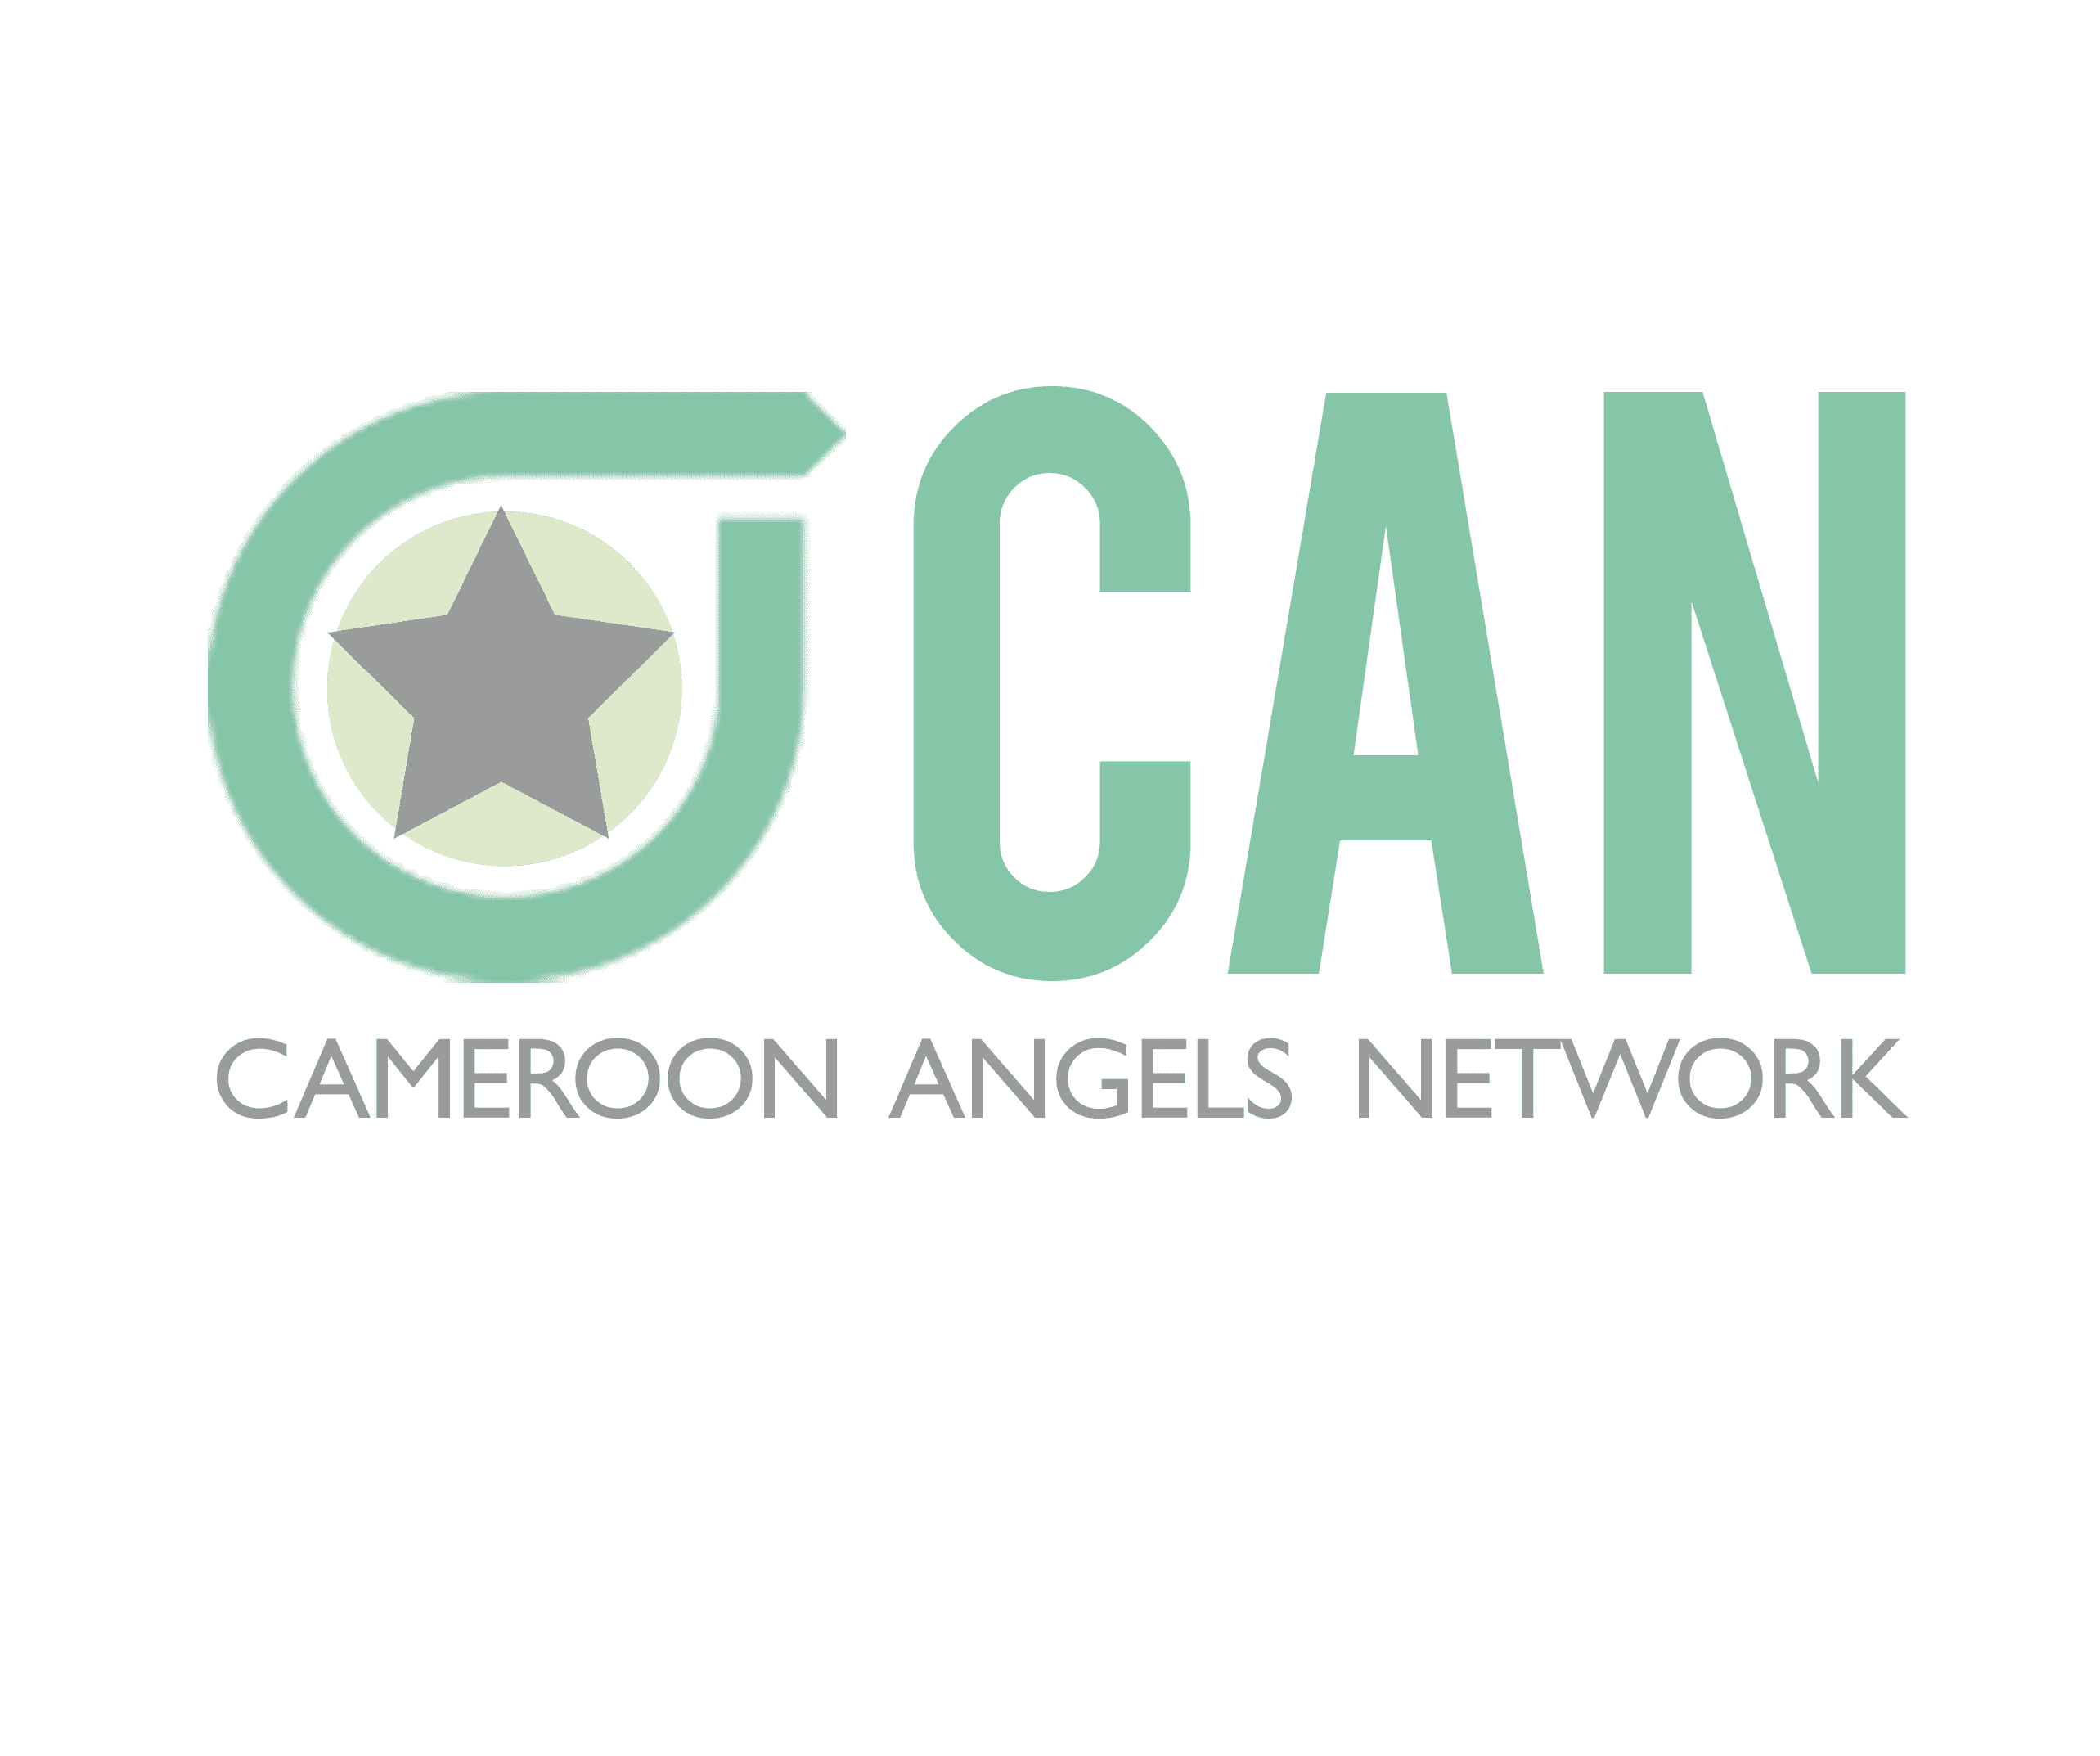 Cameroon Angels Network (CAN) is the first network of angel investors in Cameroon. CAN invests in all sectors and industries with a particular interest in technology.   CAN is organizing a pitch competition at GICAM in Douala, Cameroon on November 29th 2014 called #YouCAN. In partnership with Sanaga Ventures, VC4Africa and ActivSpaces, the competition is open to all startups in Cameroon.